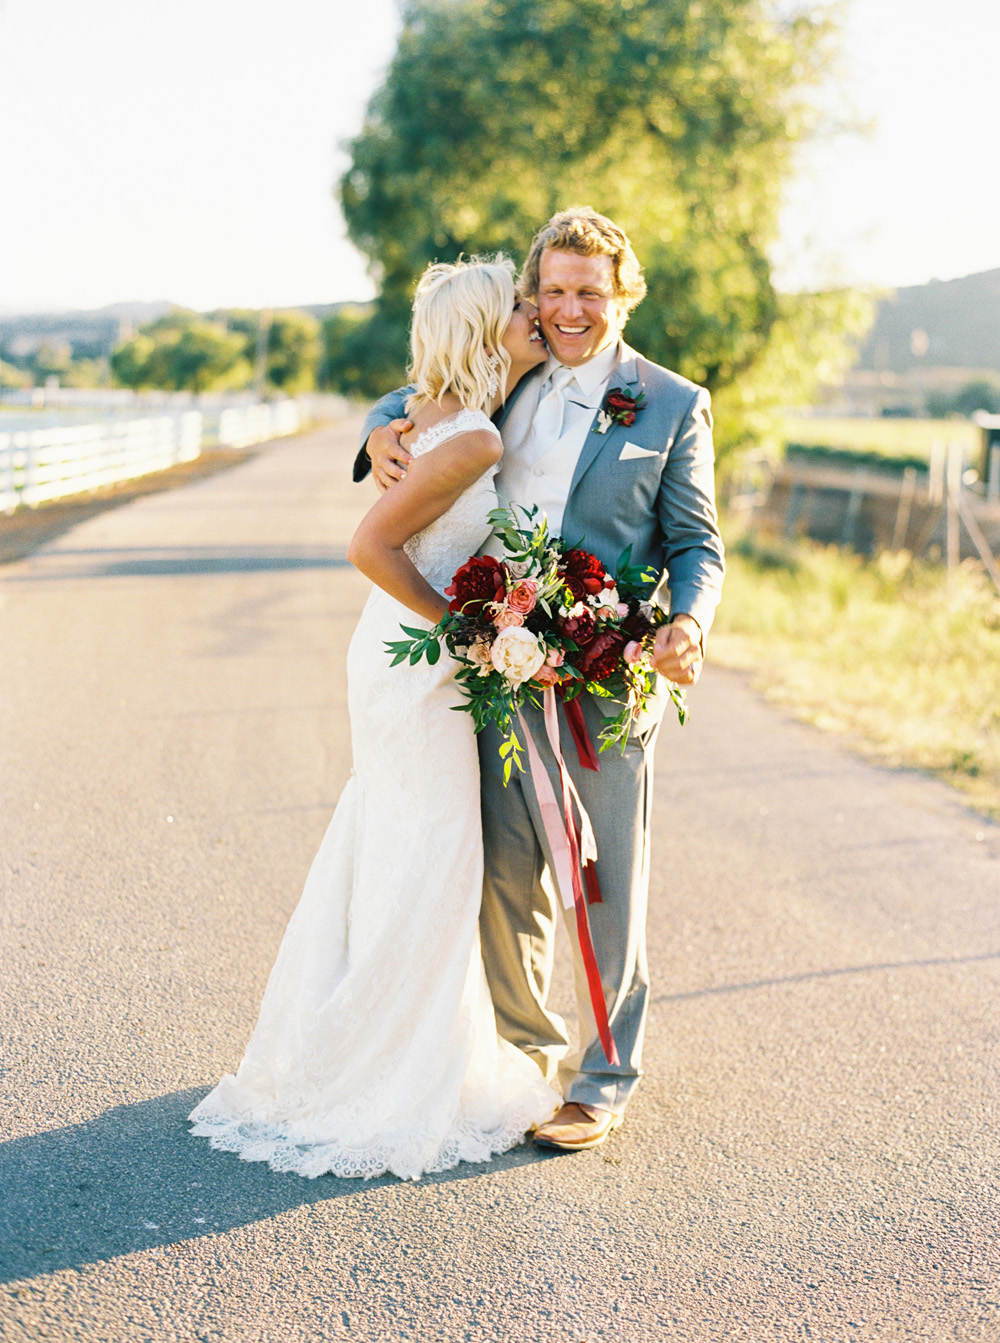 Greengate Ranch wedding photographer Jen Rodriguez